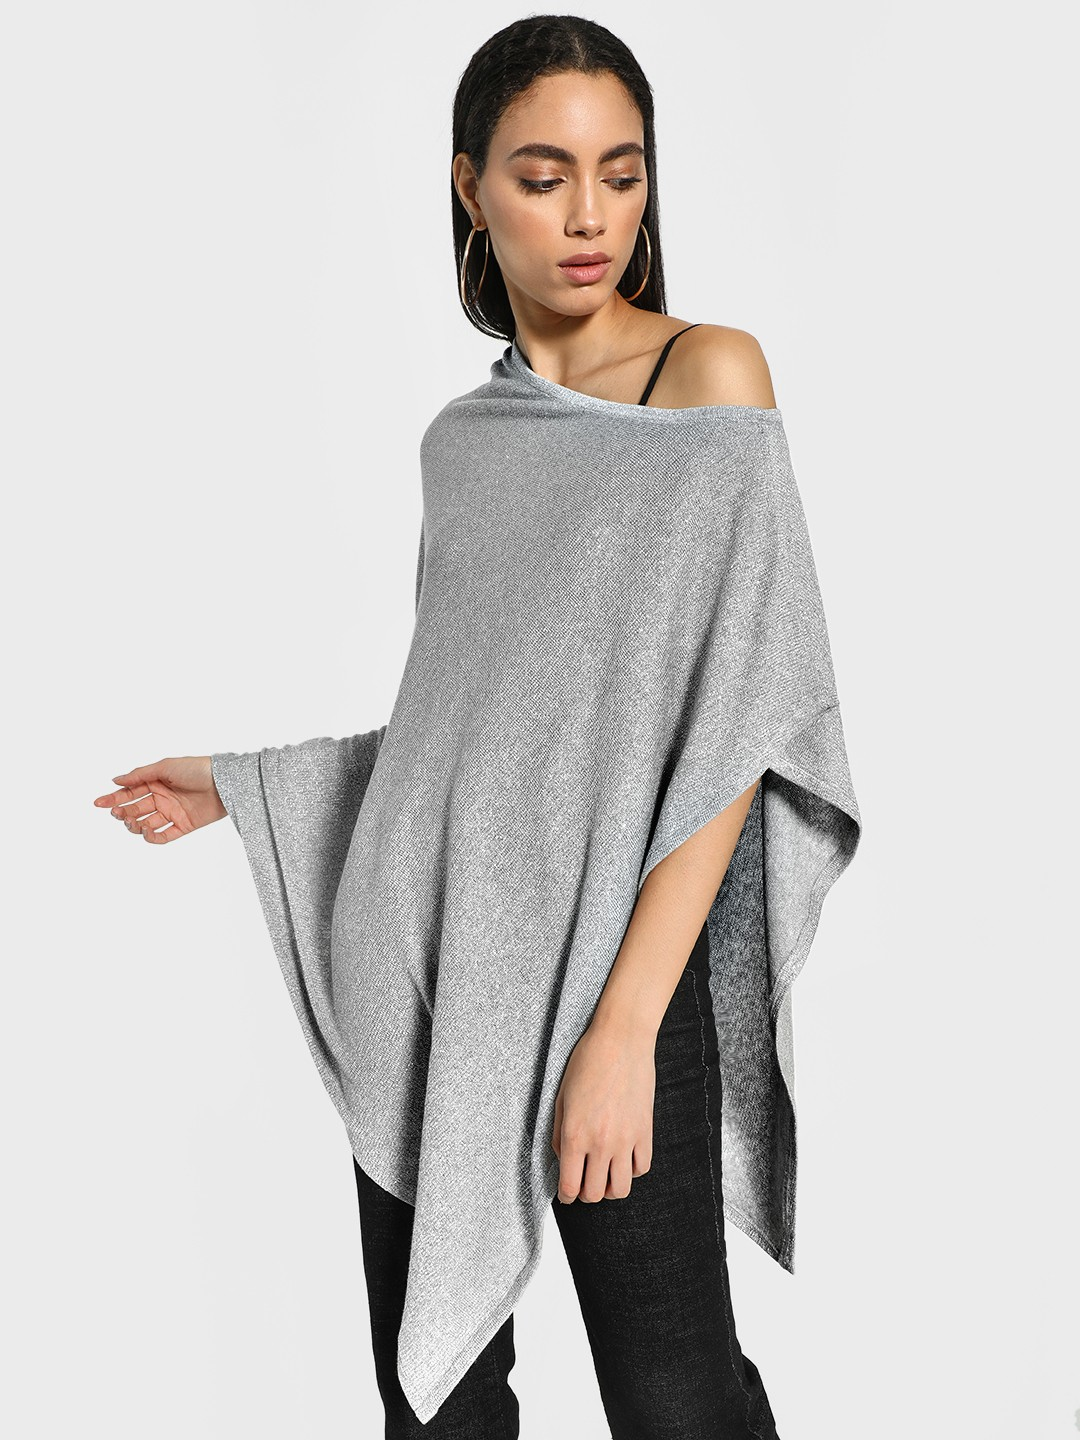 Akiva Silver All Over Shimmer Cape 1